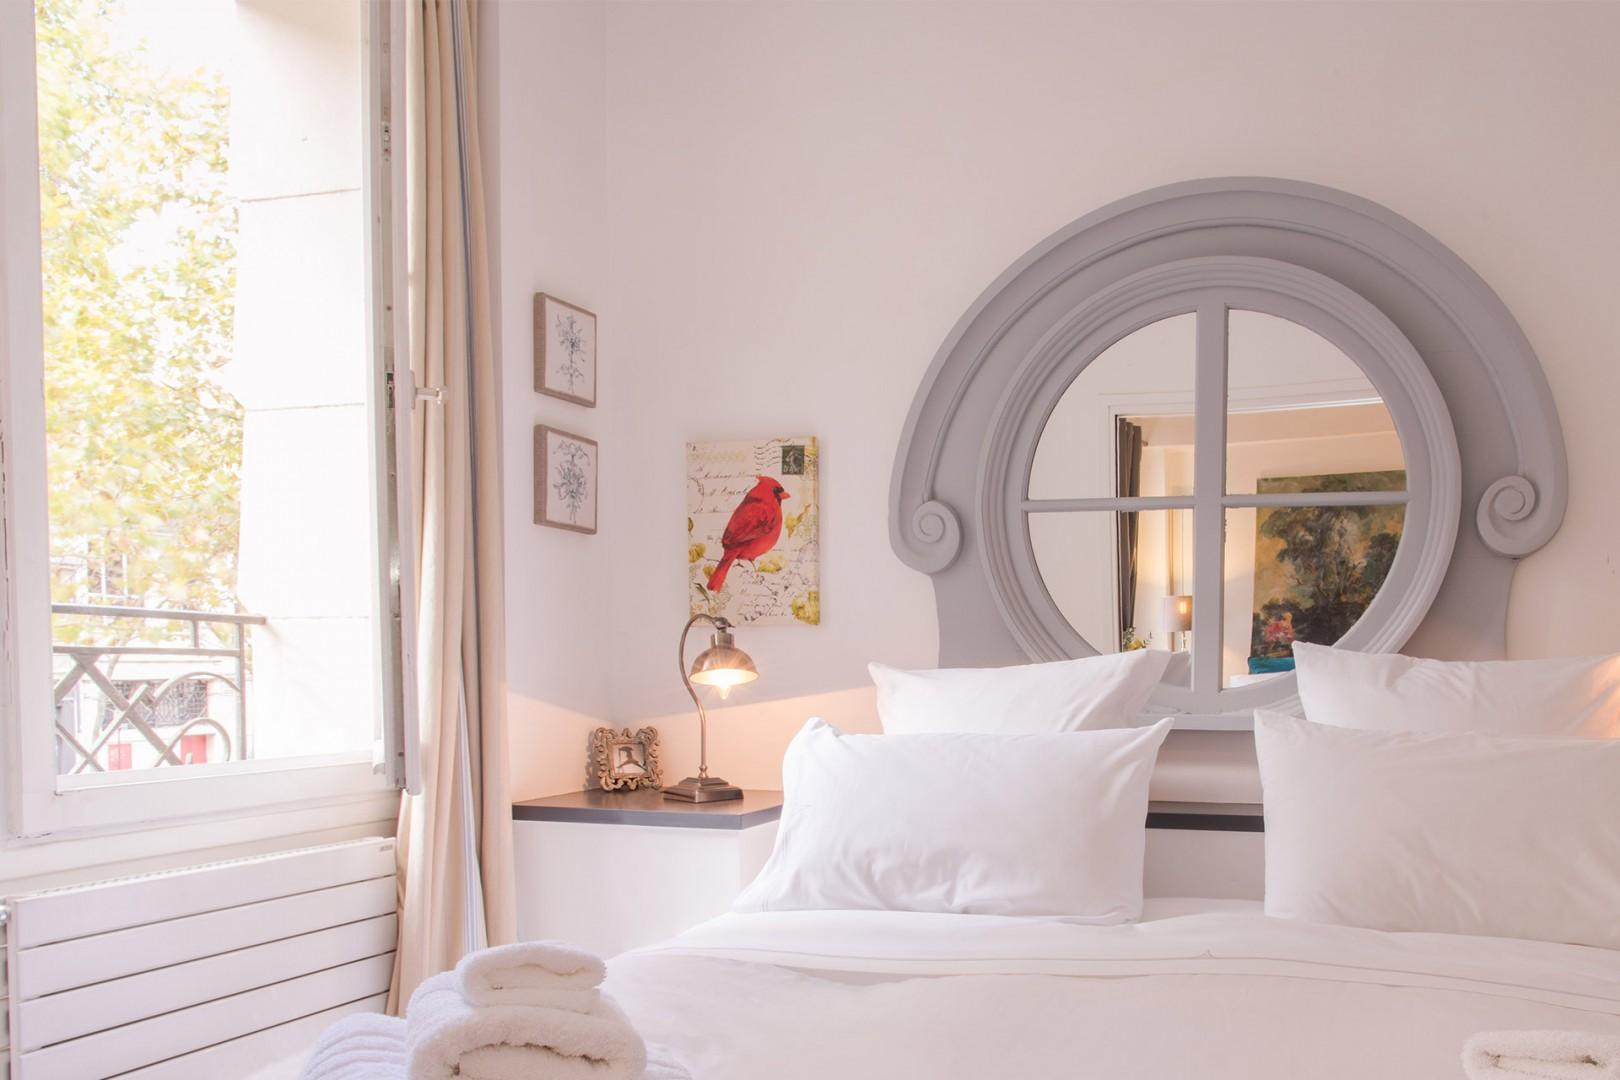 Large windows let lots of light into the lovely Parisian bedroom.